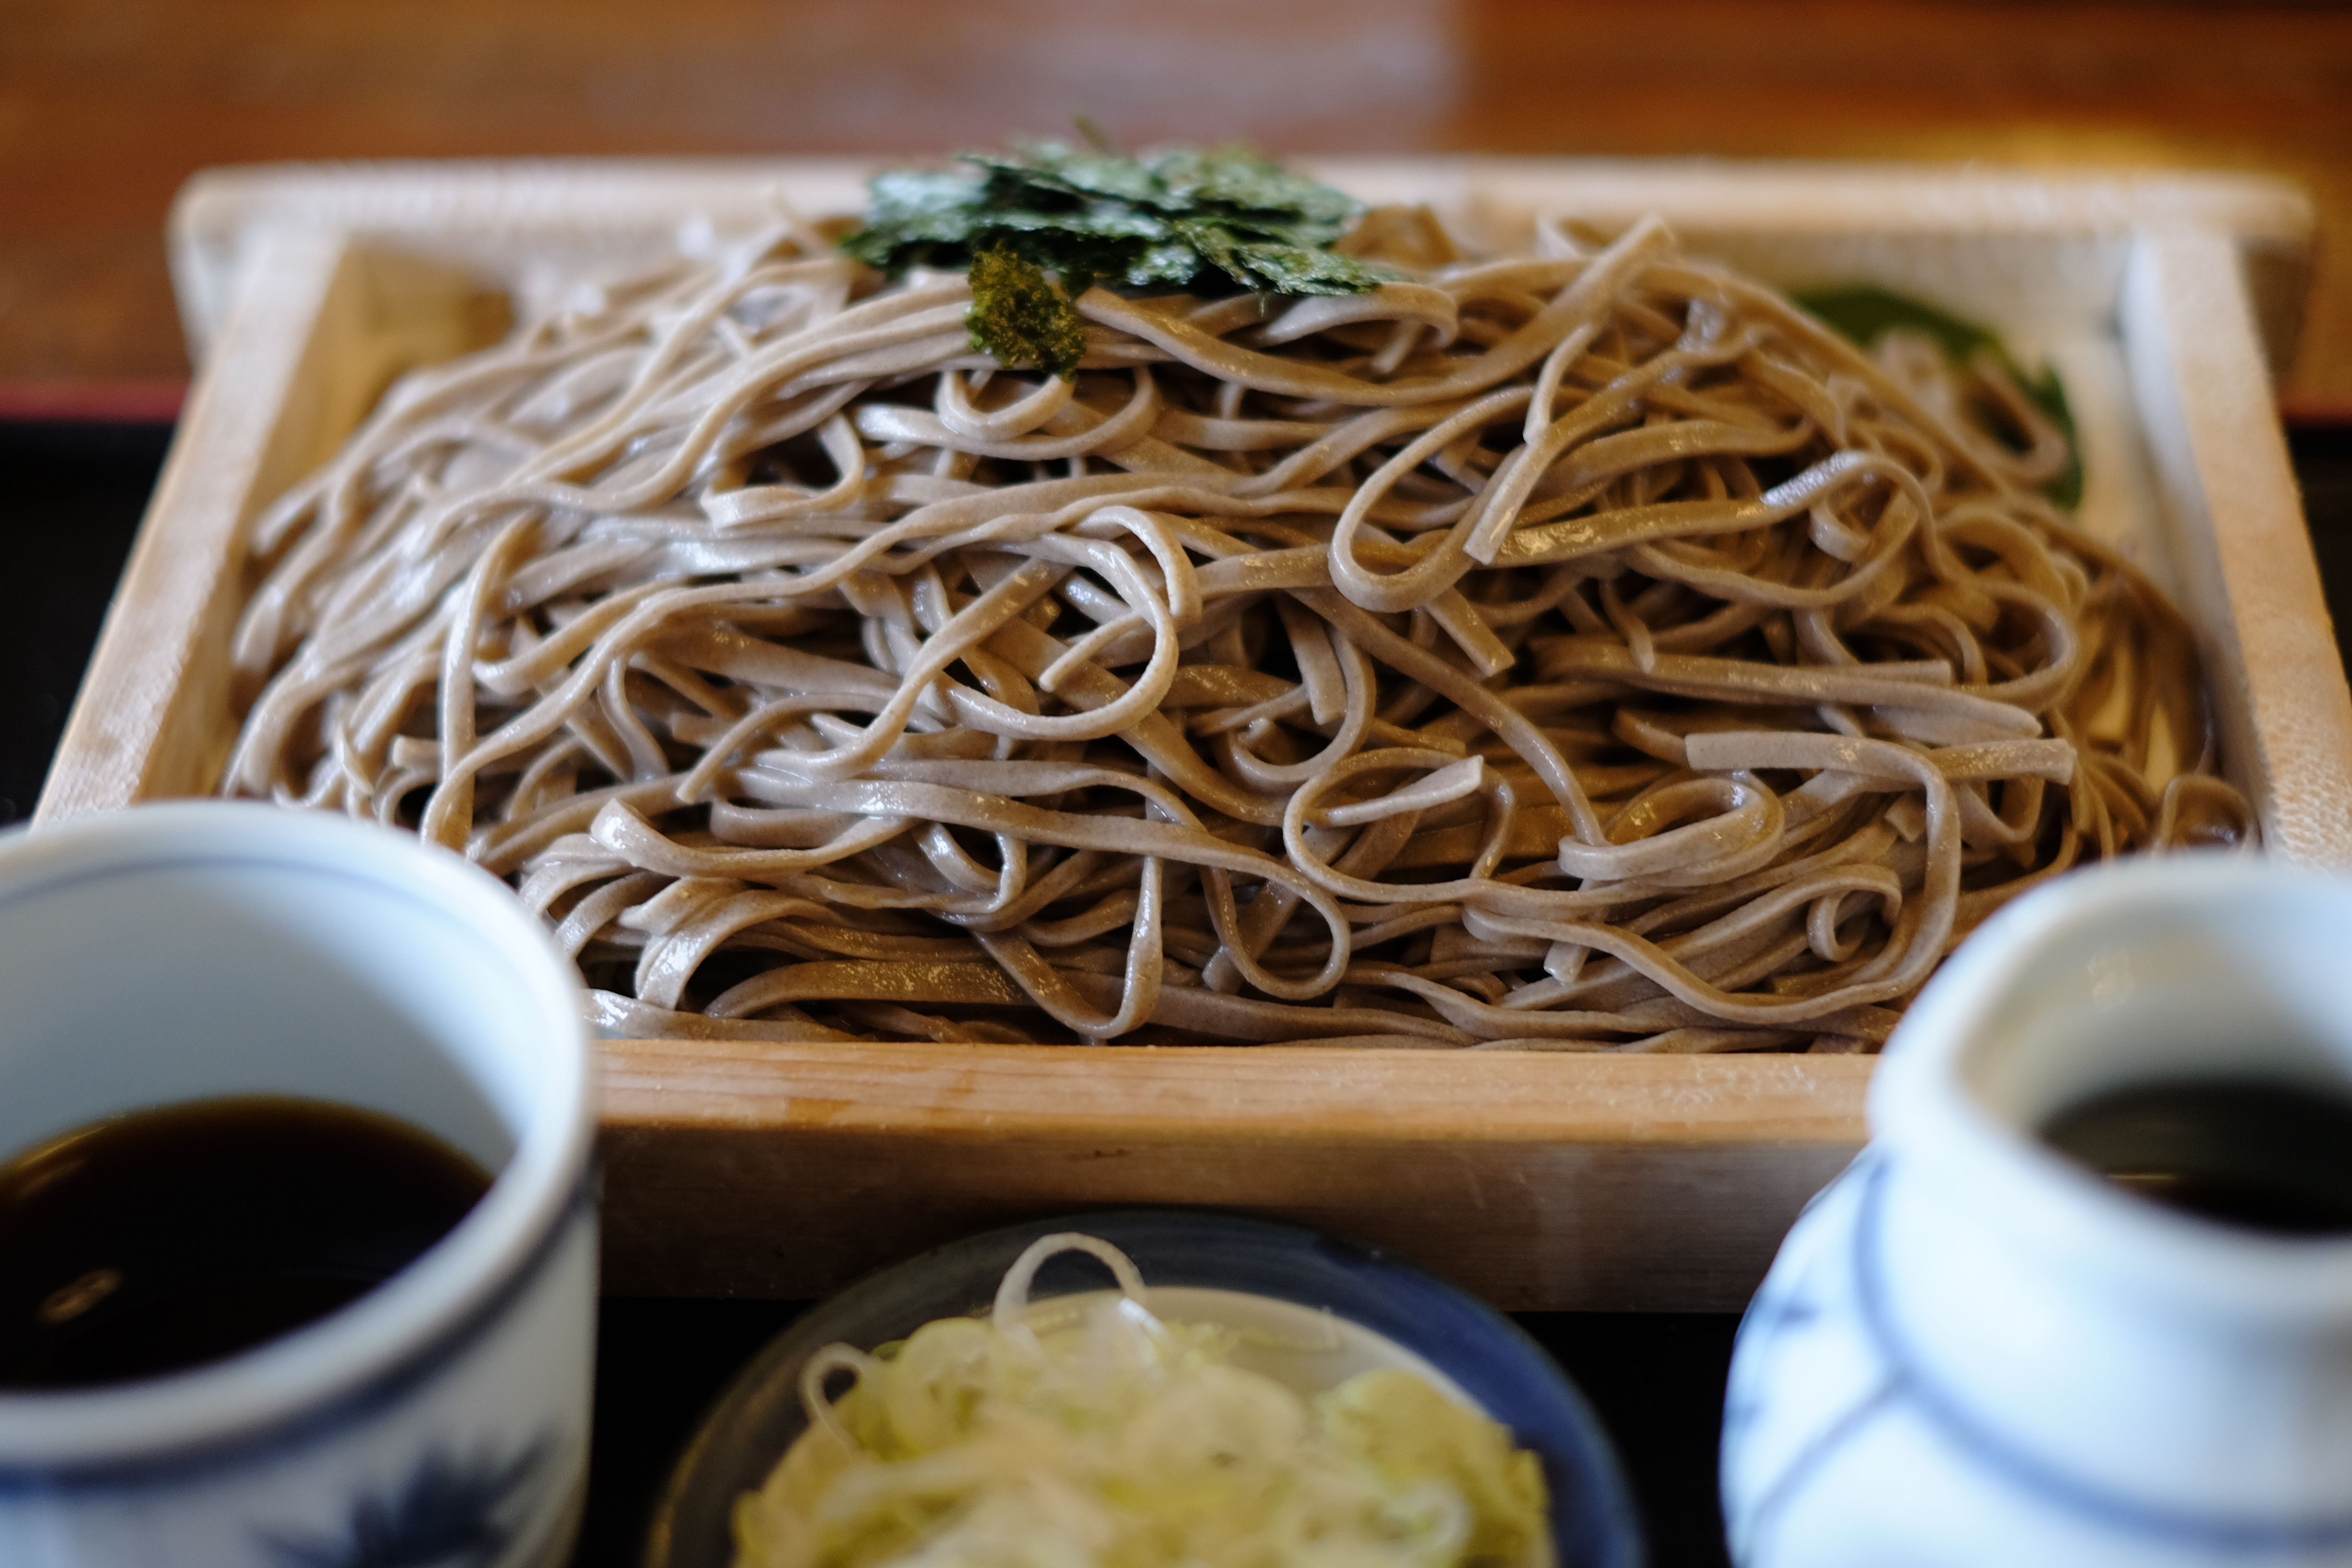 anthony bourdain hokkaido - Have a taste of this cold soba noodles! -Photo by Batholith under CC BY-SA 2.0